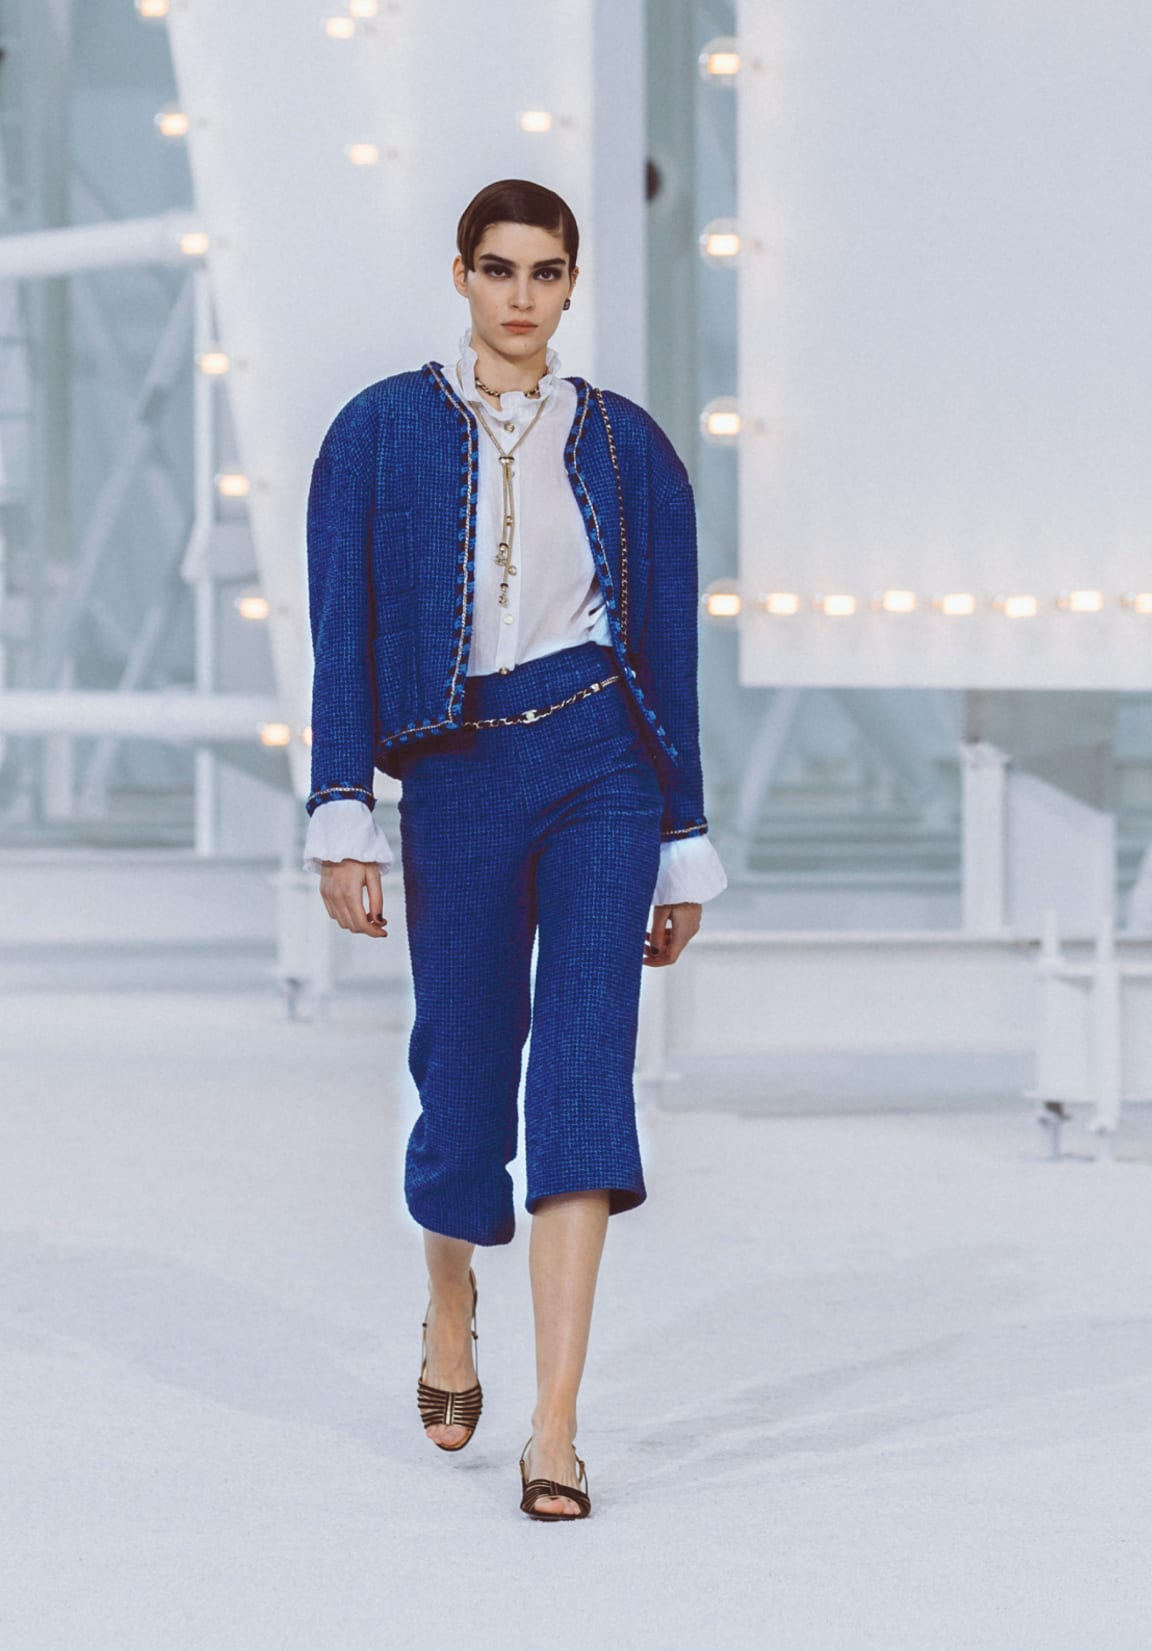 zoom - Image 1 - Look 21